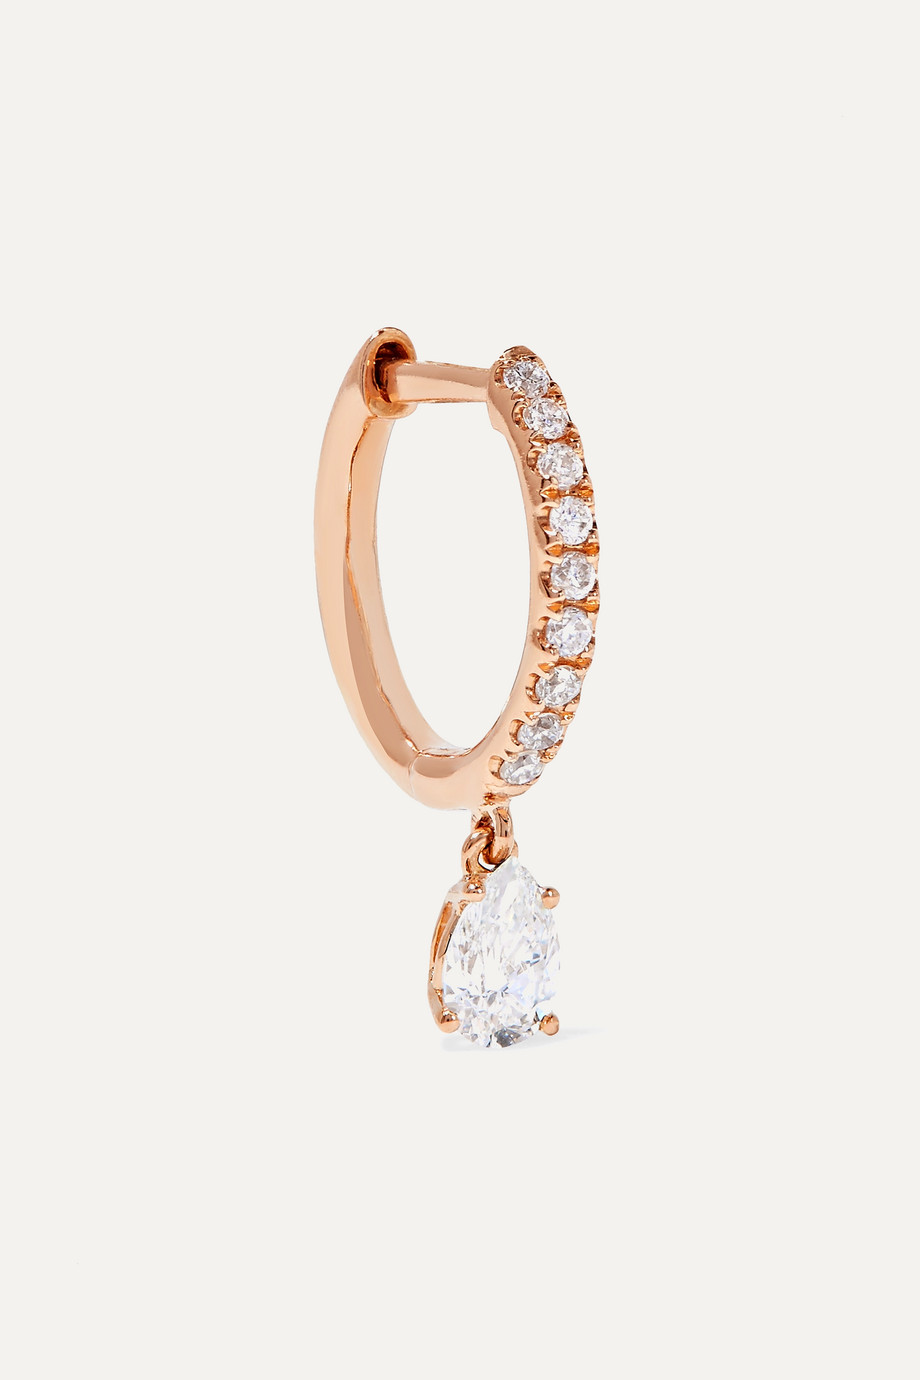 Anita Ko Huggies 18-karat rose gold diamond earring